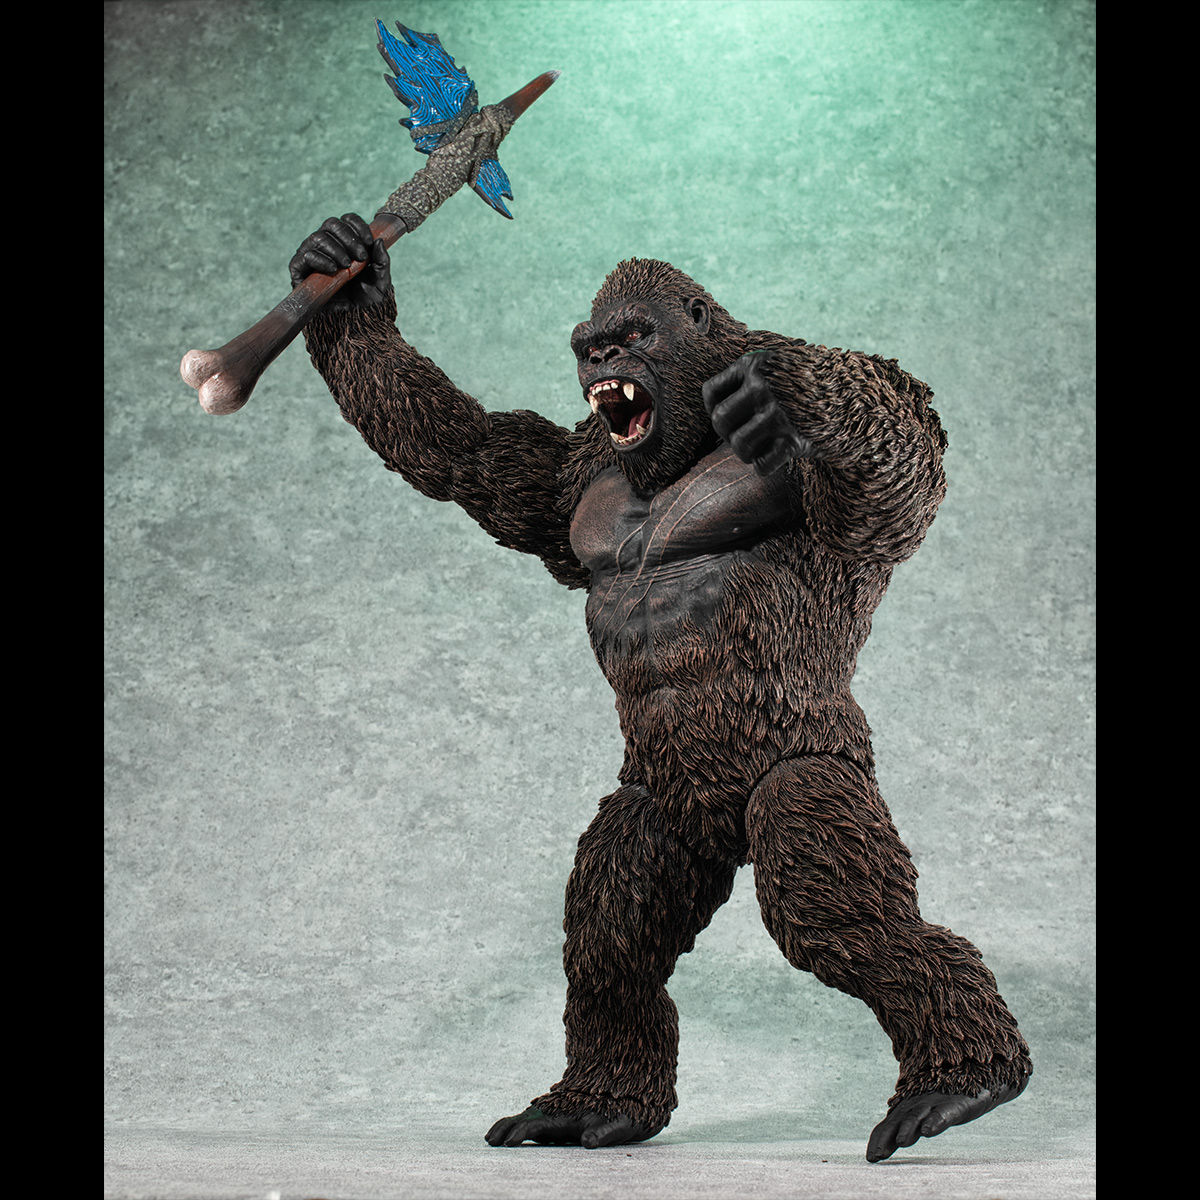 UA Monsters KONG from GODZILLAvs.KONG (2021) [Dec 2021 Delivery]